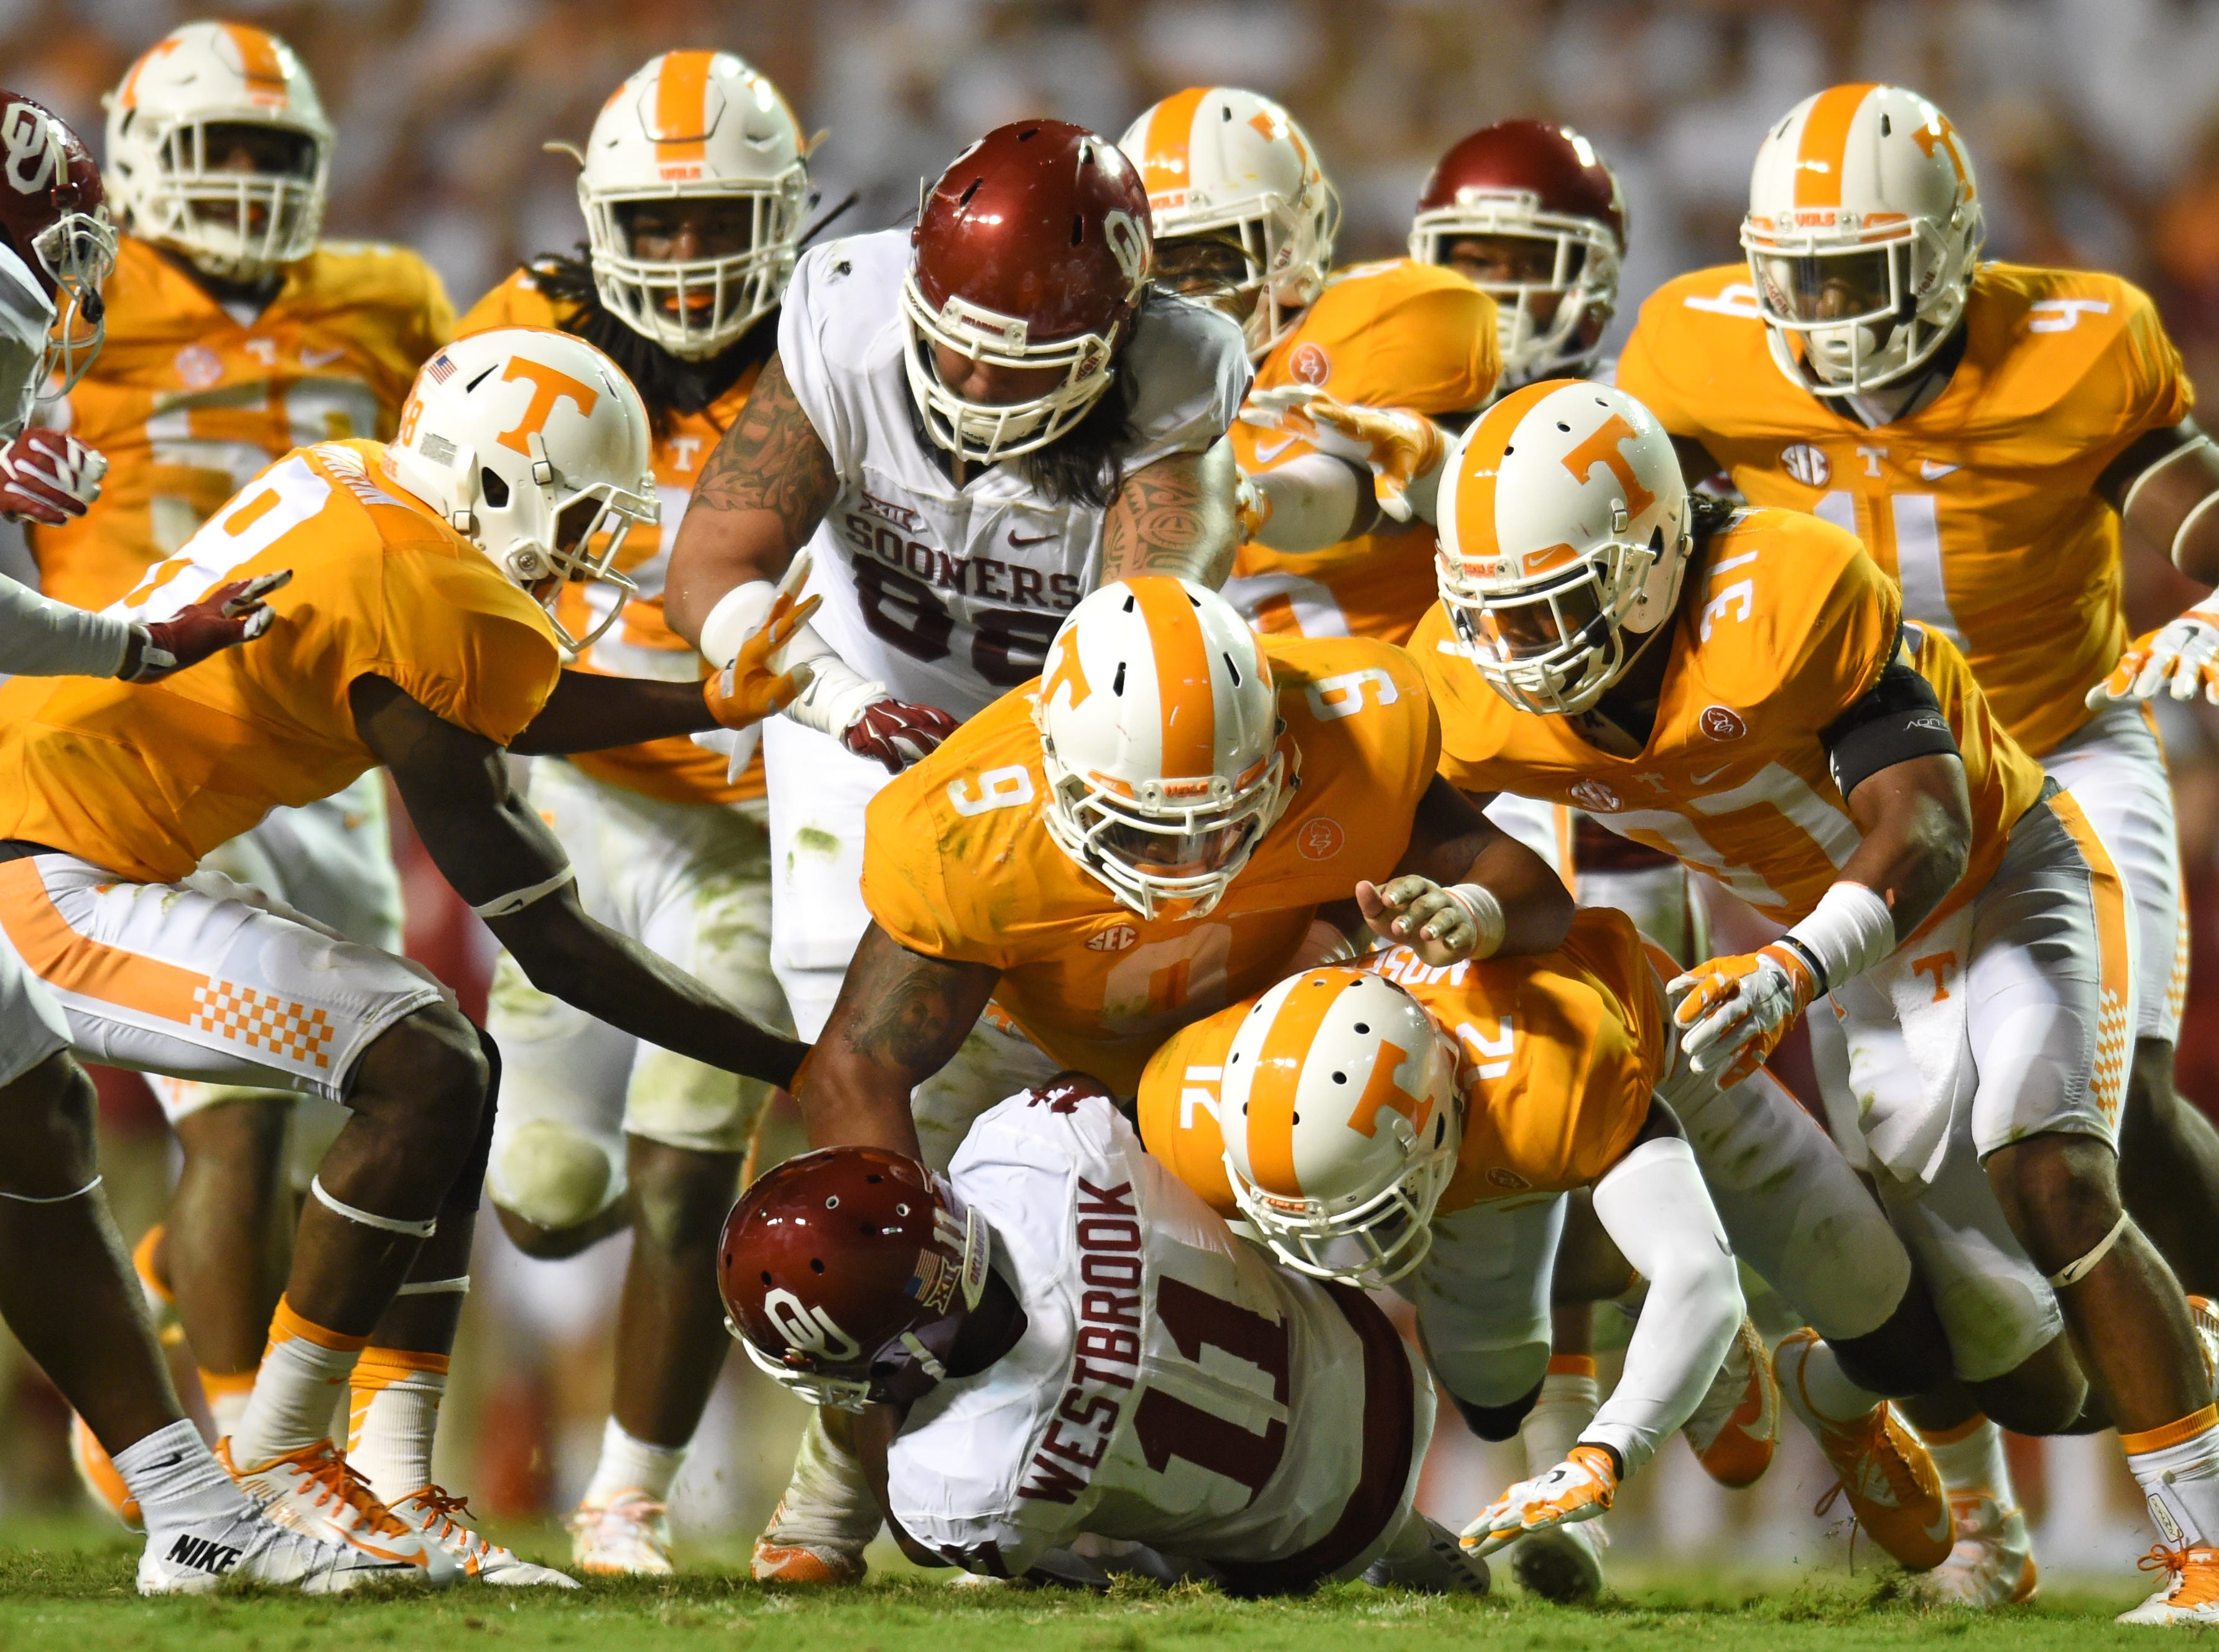 Tennessee defense swarms onto Oklahoma wide receiver Dede Westbrook (11) during the second half at Neyland Stadium on Saturday, Sept. 12, 2015 in Knoxville, Tenn. Oklahoma won 31-24.